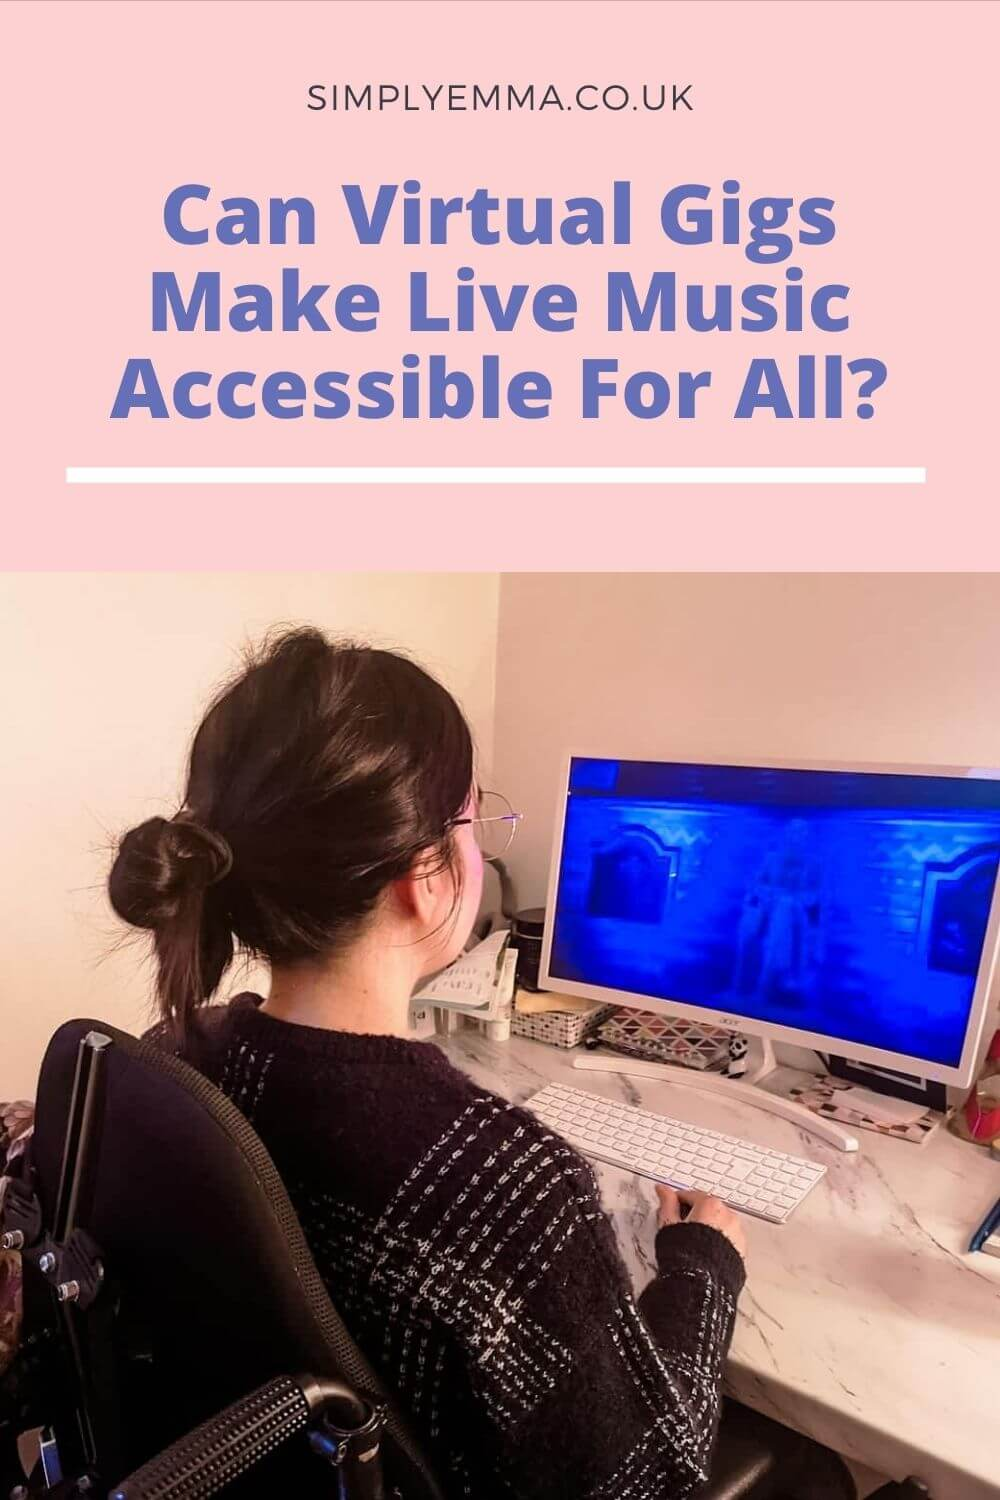 Can Virtual Gigs Make Live Music Accessible For All?